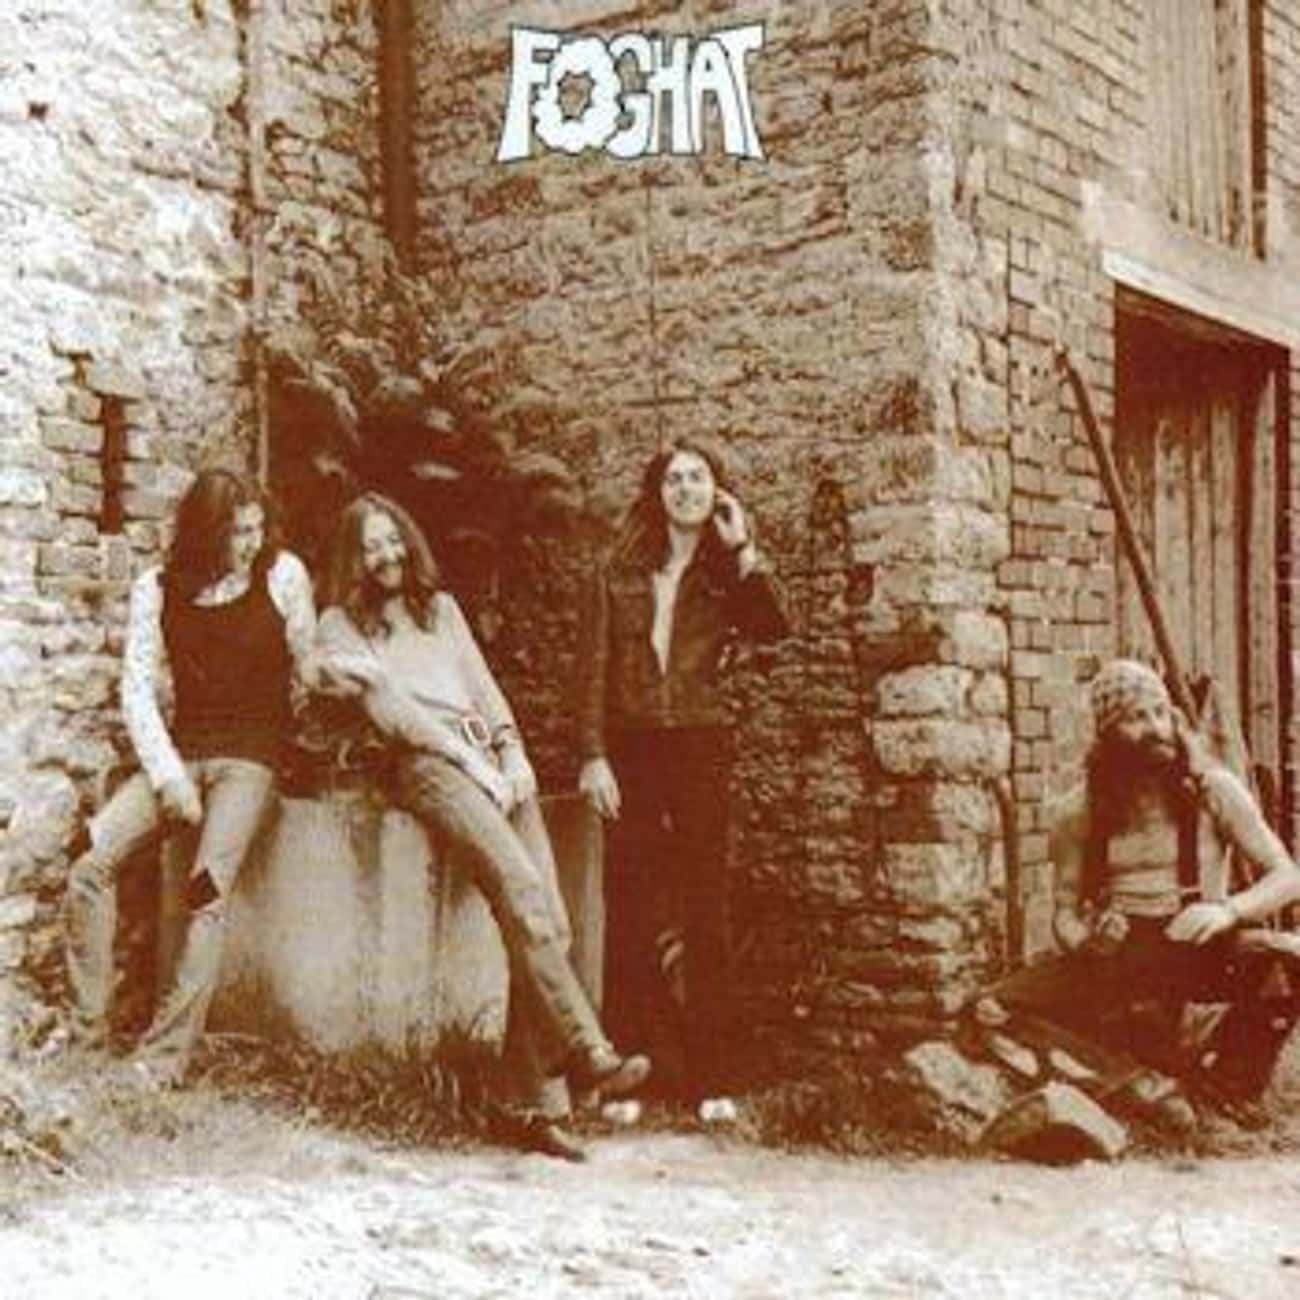 Foghat is listed (or ranked) 2 on the list The Best Foghat Albums of All Time